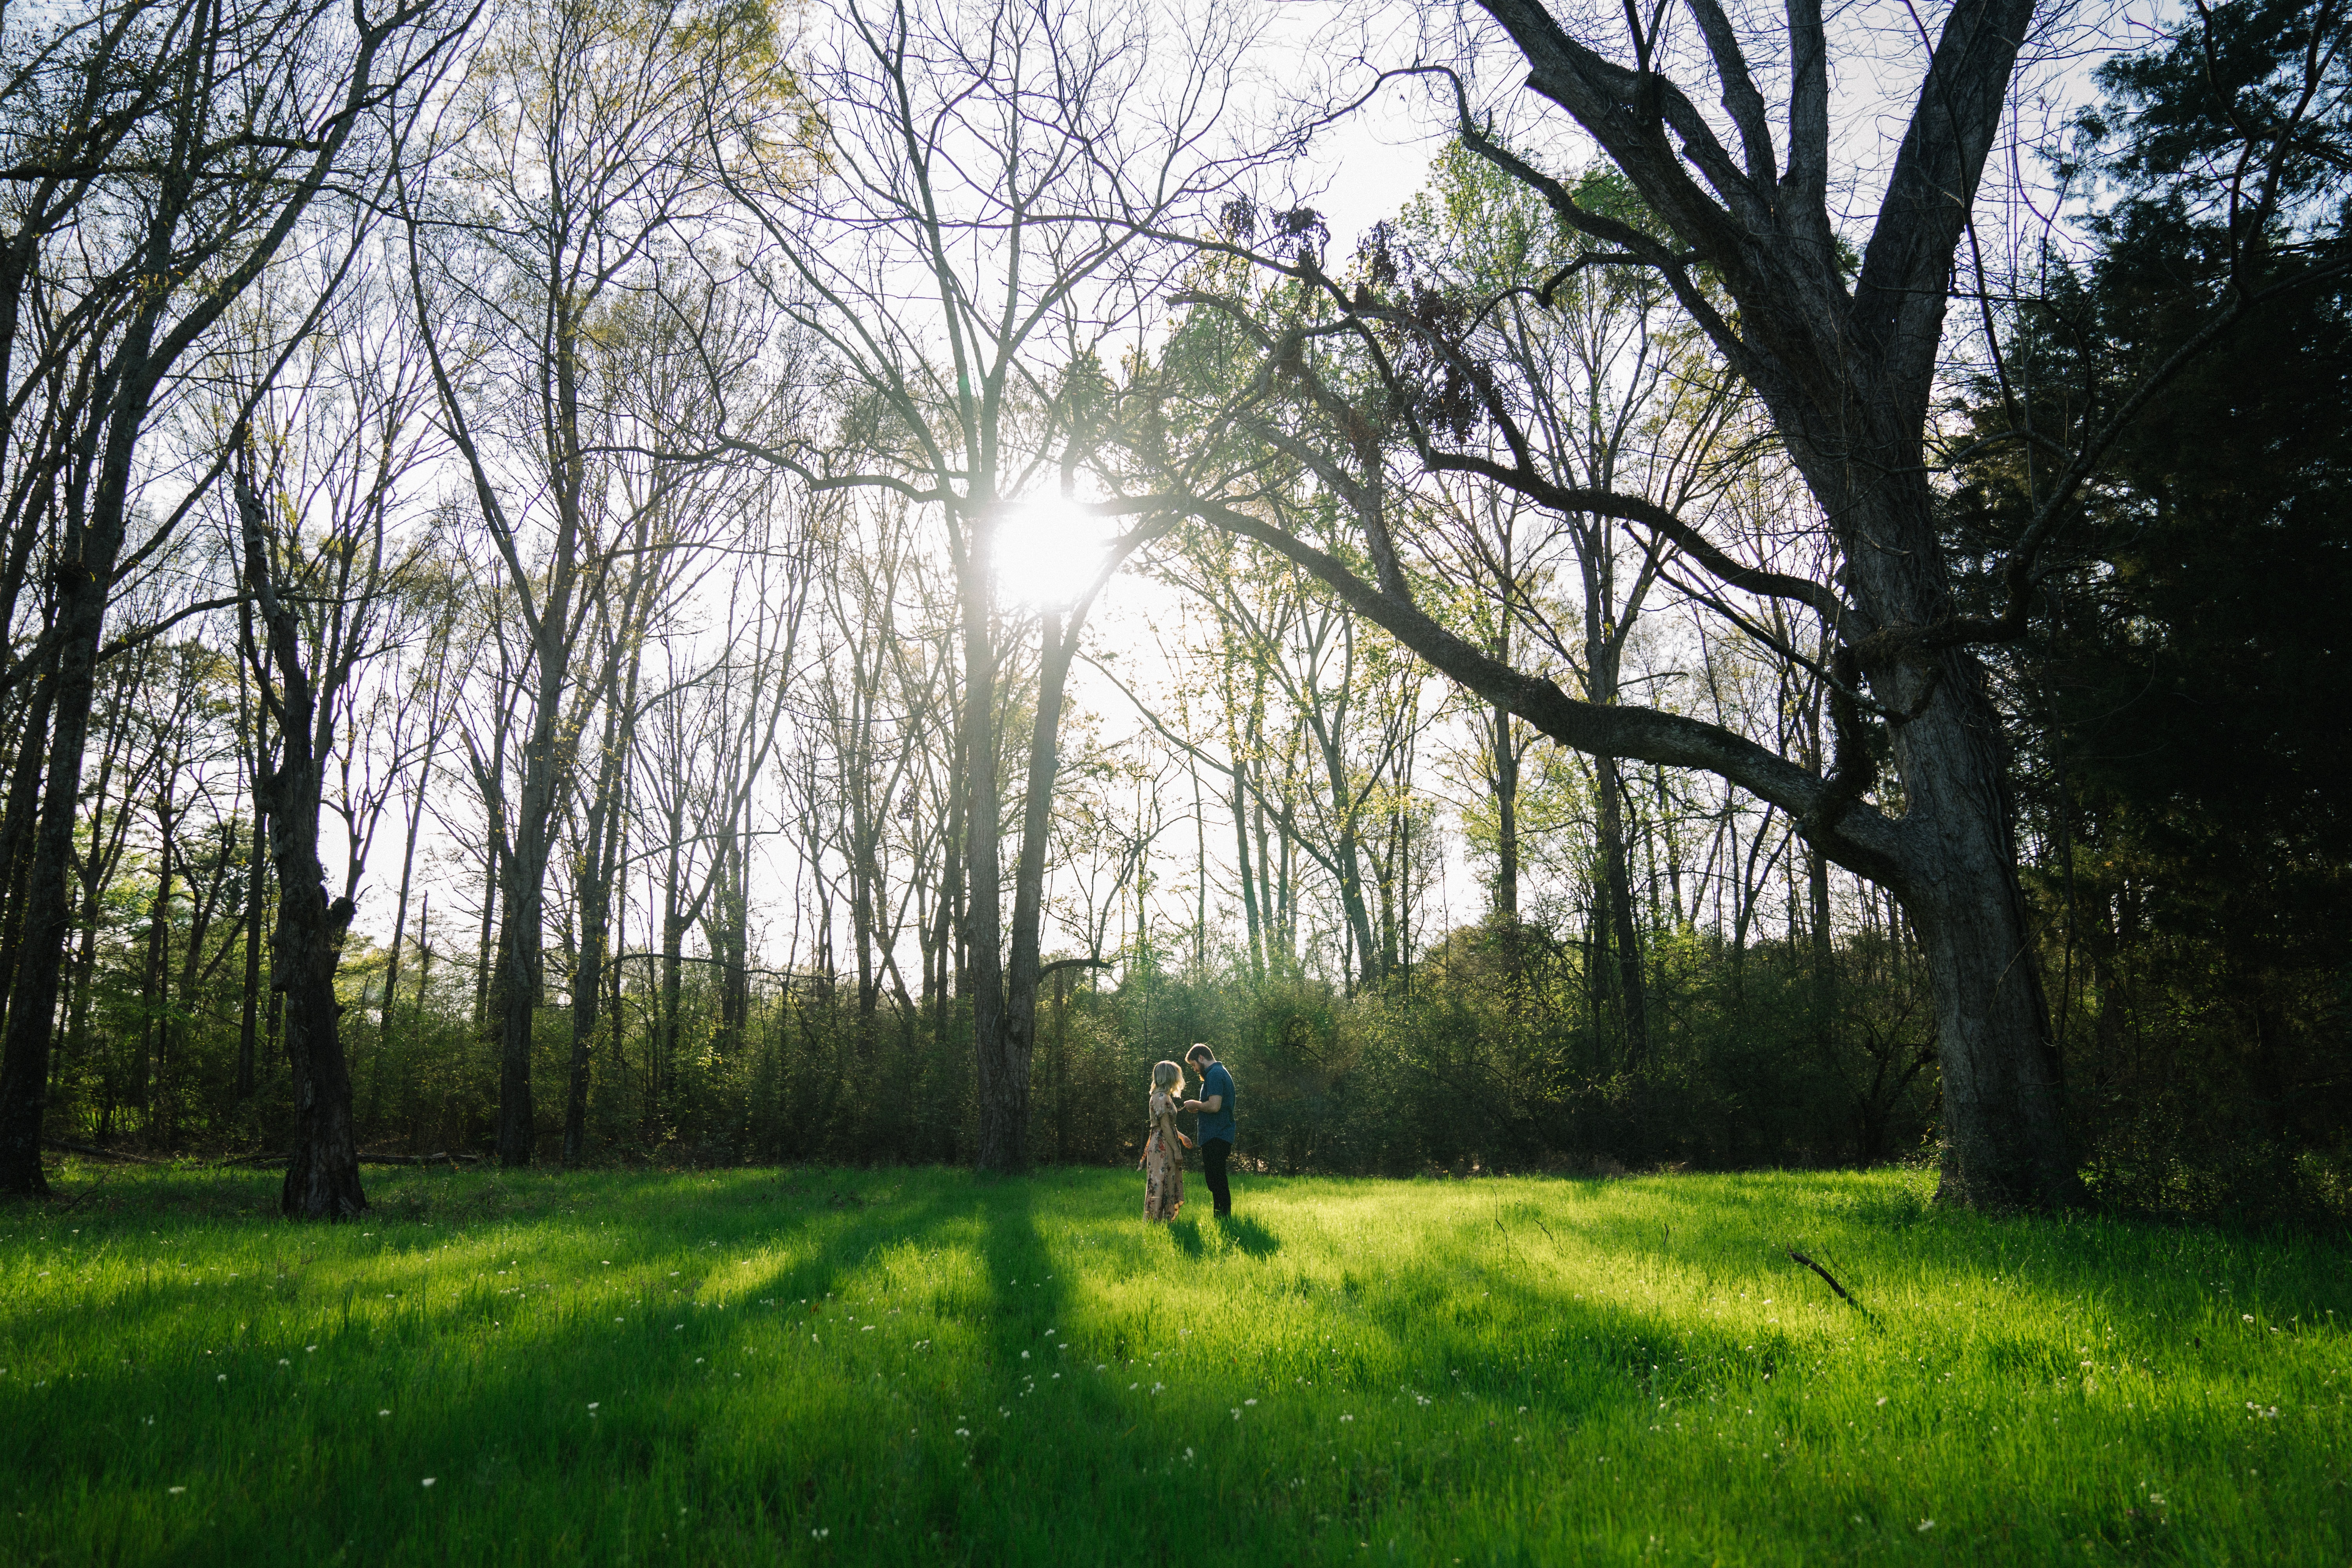 A couple stands on the grass among trees, leaning against one another